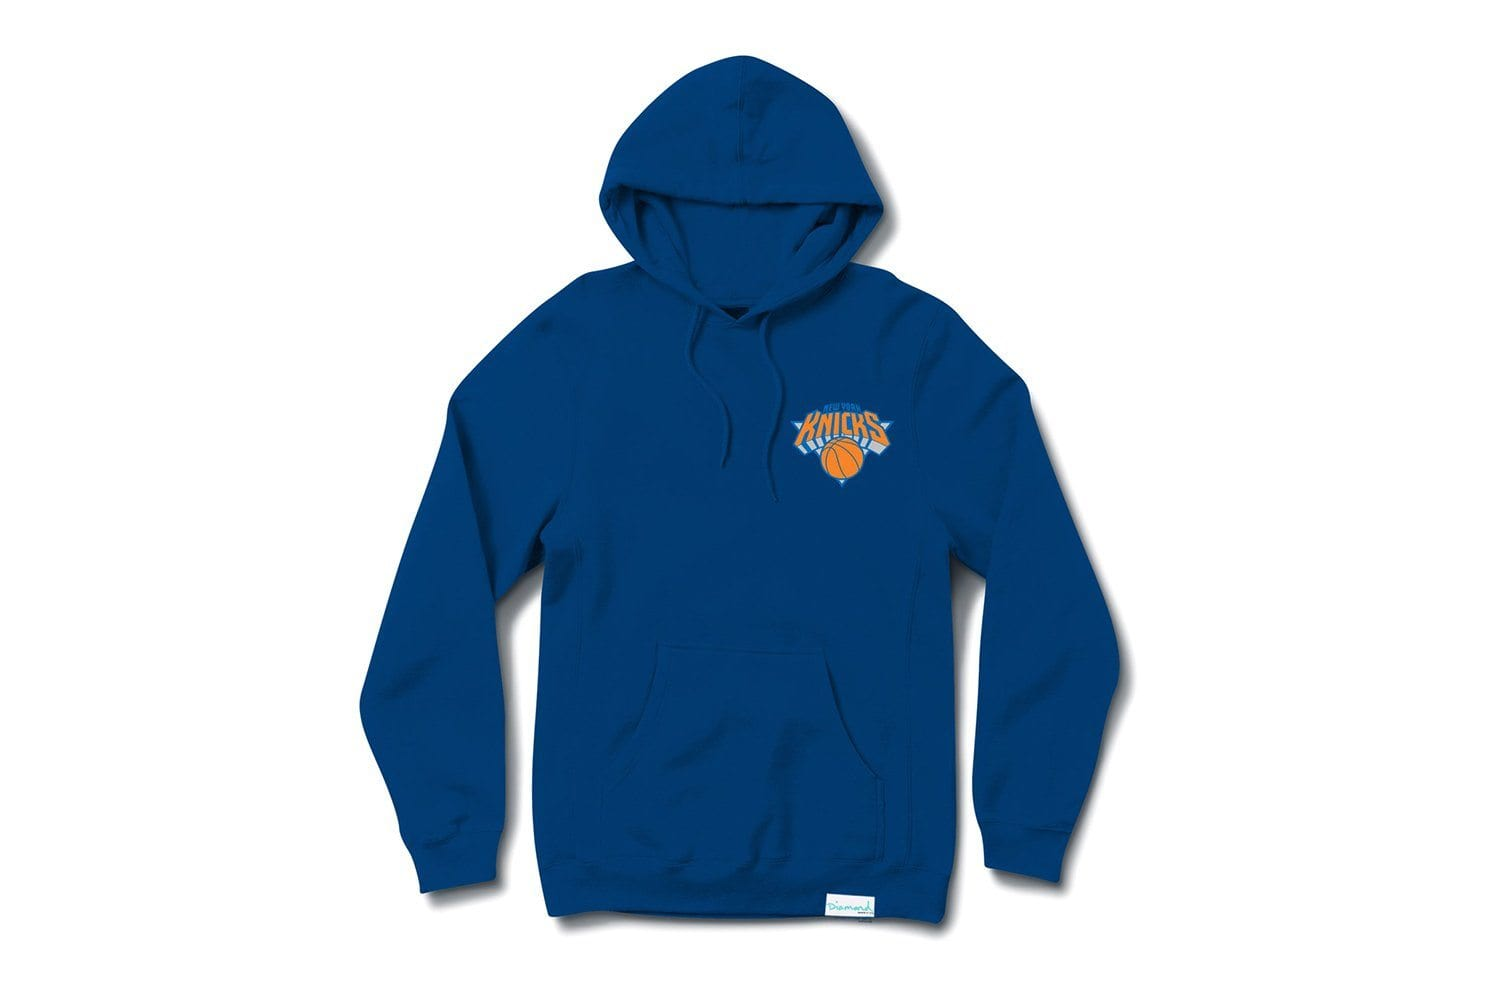 SPACE JAM KNICKS HOODIE-A20DMPF203 MENS SOFTGOODS DIAMOND SUPPLY CO.